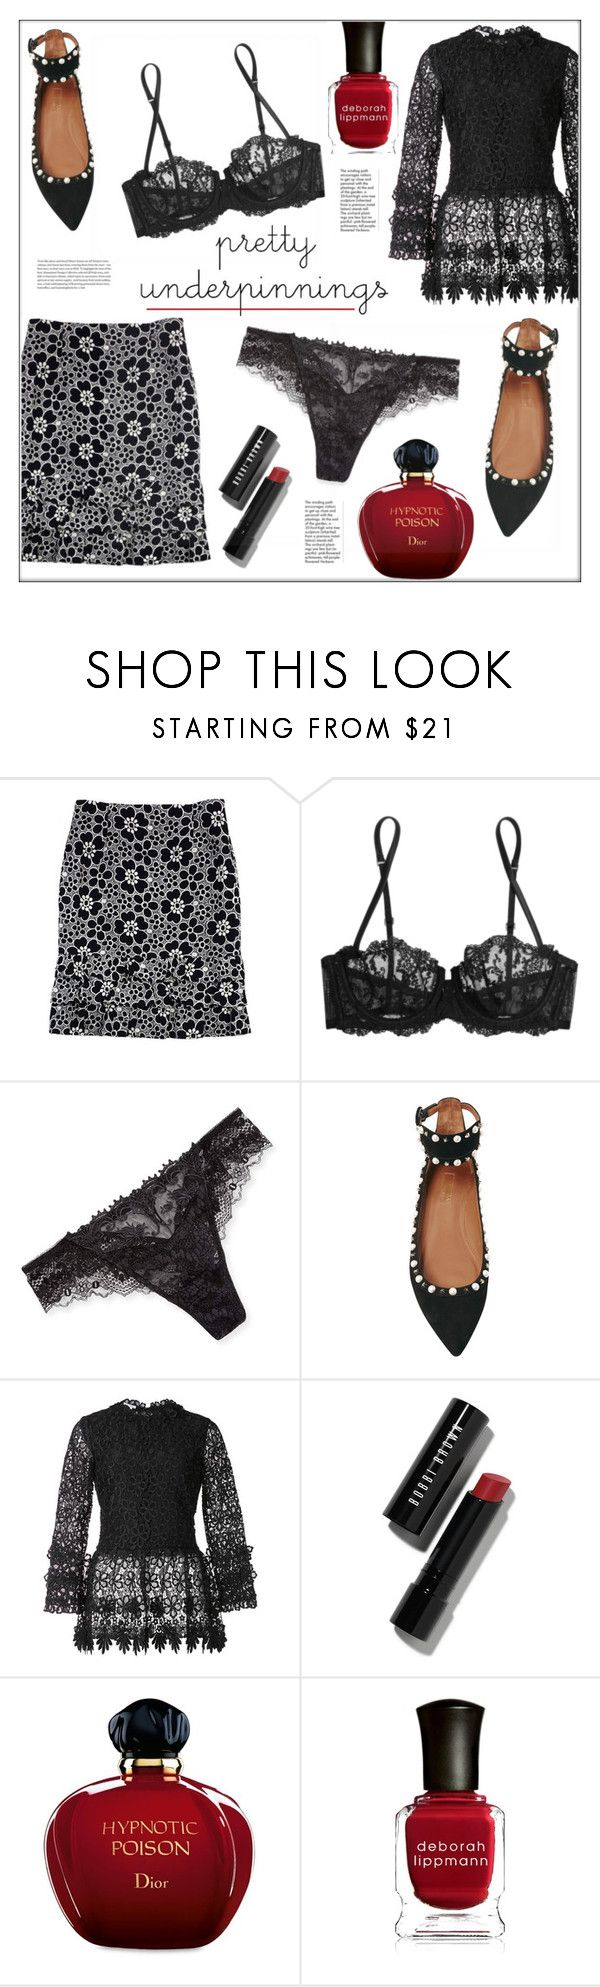 """The Prettiest Underpinnings"" by pat912 ❤ liked on Polyvore featuring Lafayette 148 New York, La Perla, Lise Charmel, Aquazzura, Oscar de la Renta, Bobbi Brown Cosmetics, Christian Dior, Deborah Lippmann, polyore and polyvoreeditorial"